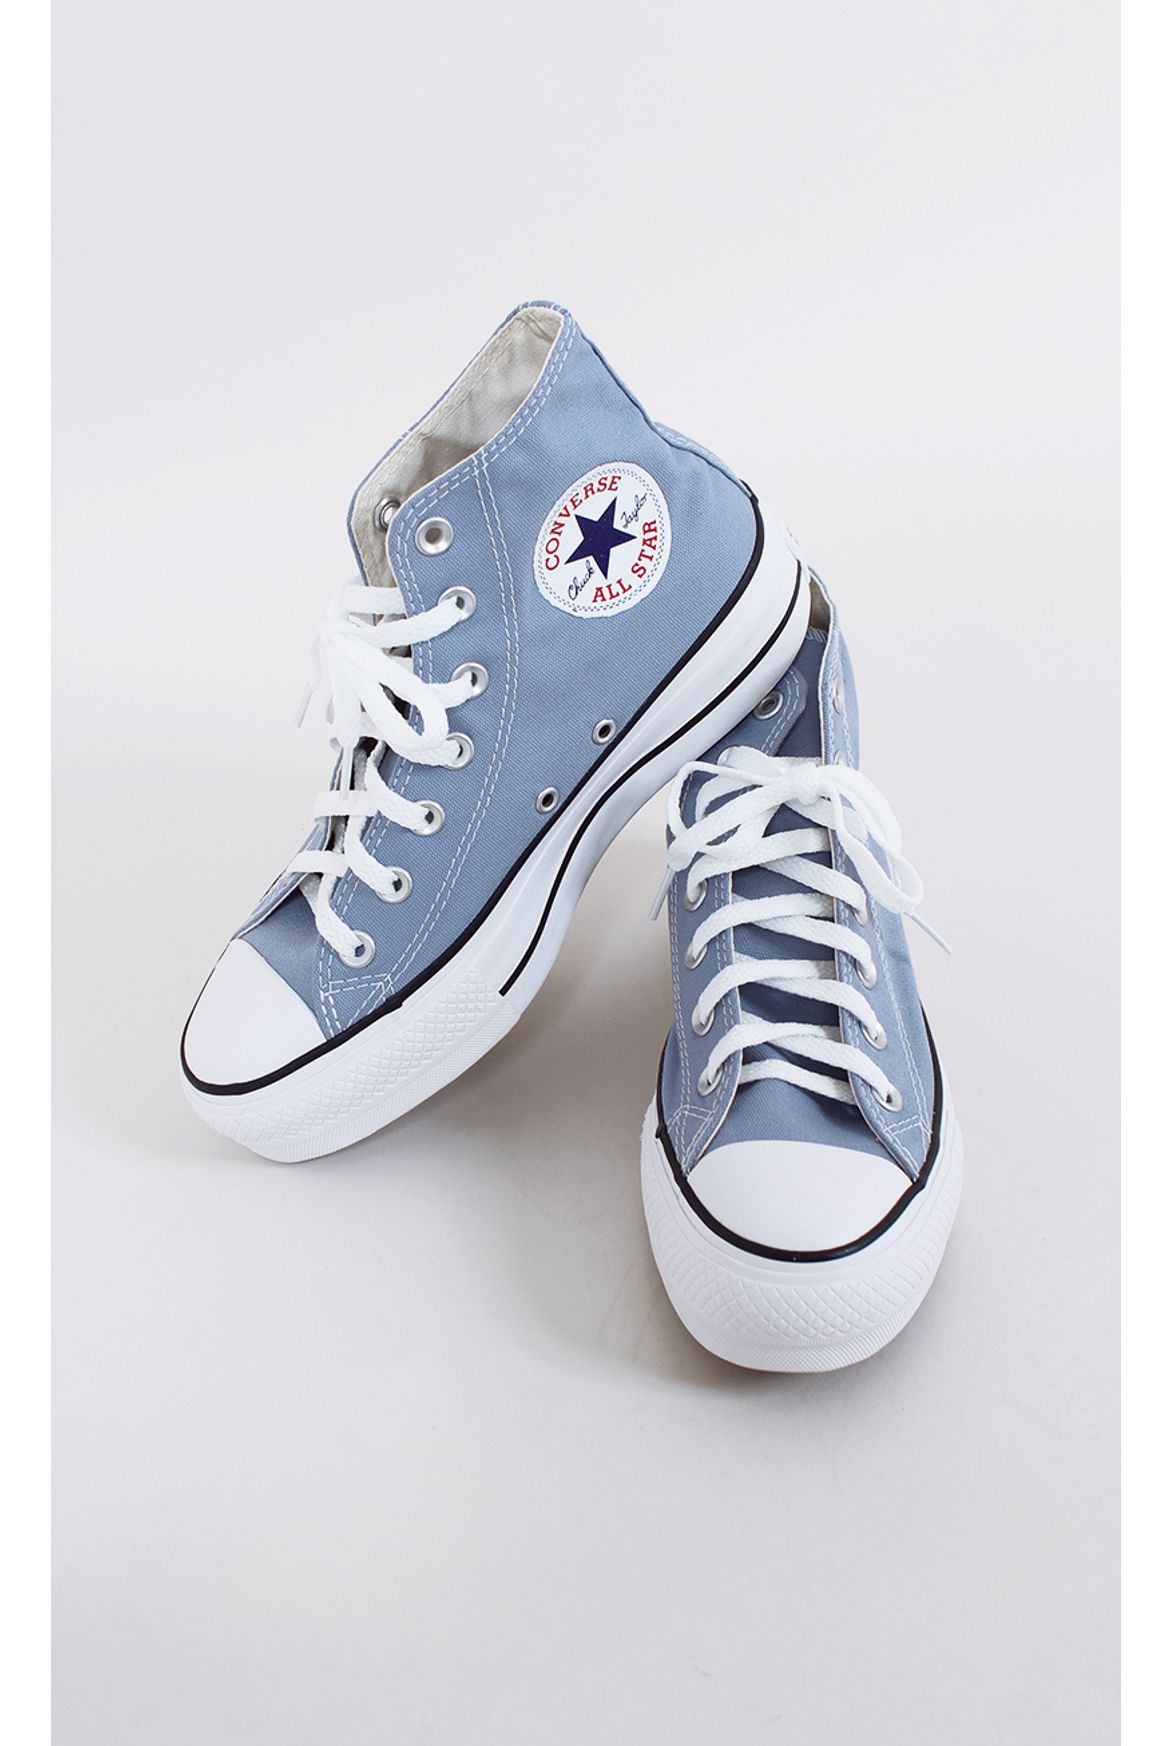 a1aec9c7c9 tênis all star converse flatform azul - Fashion Closet